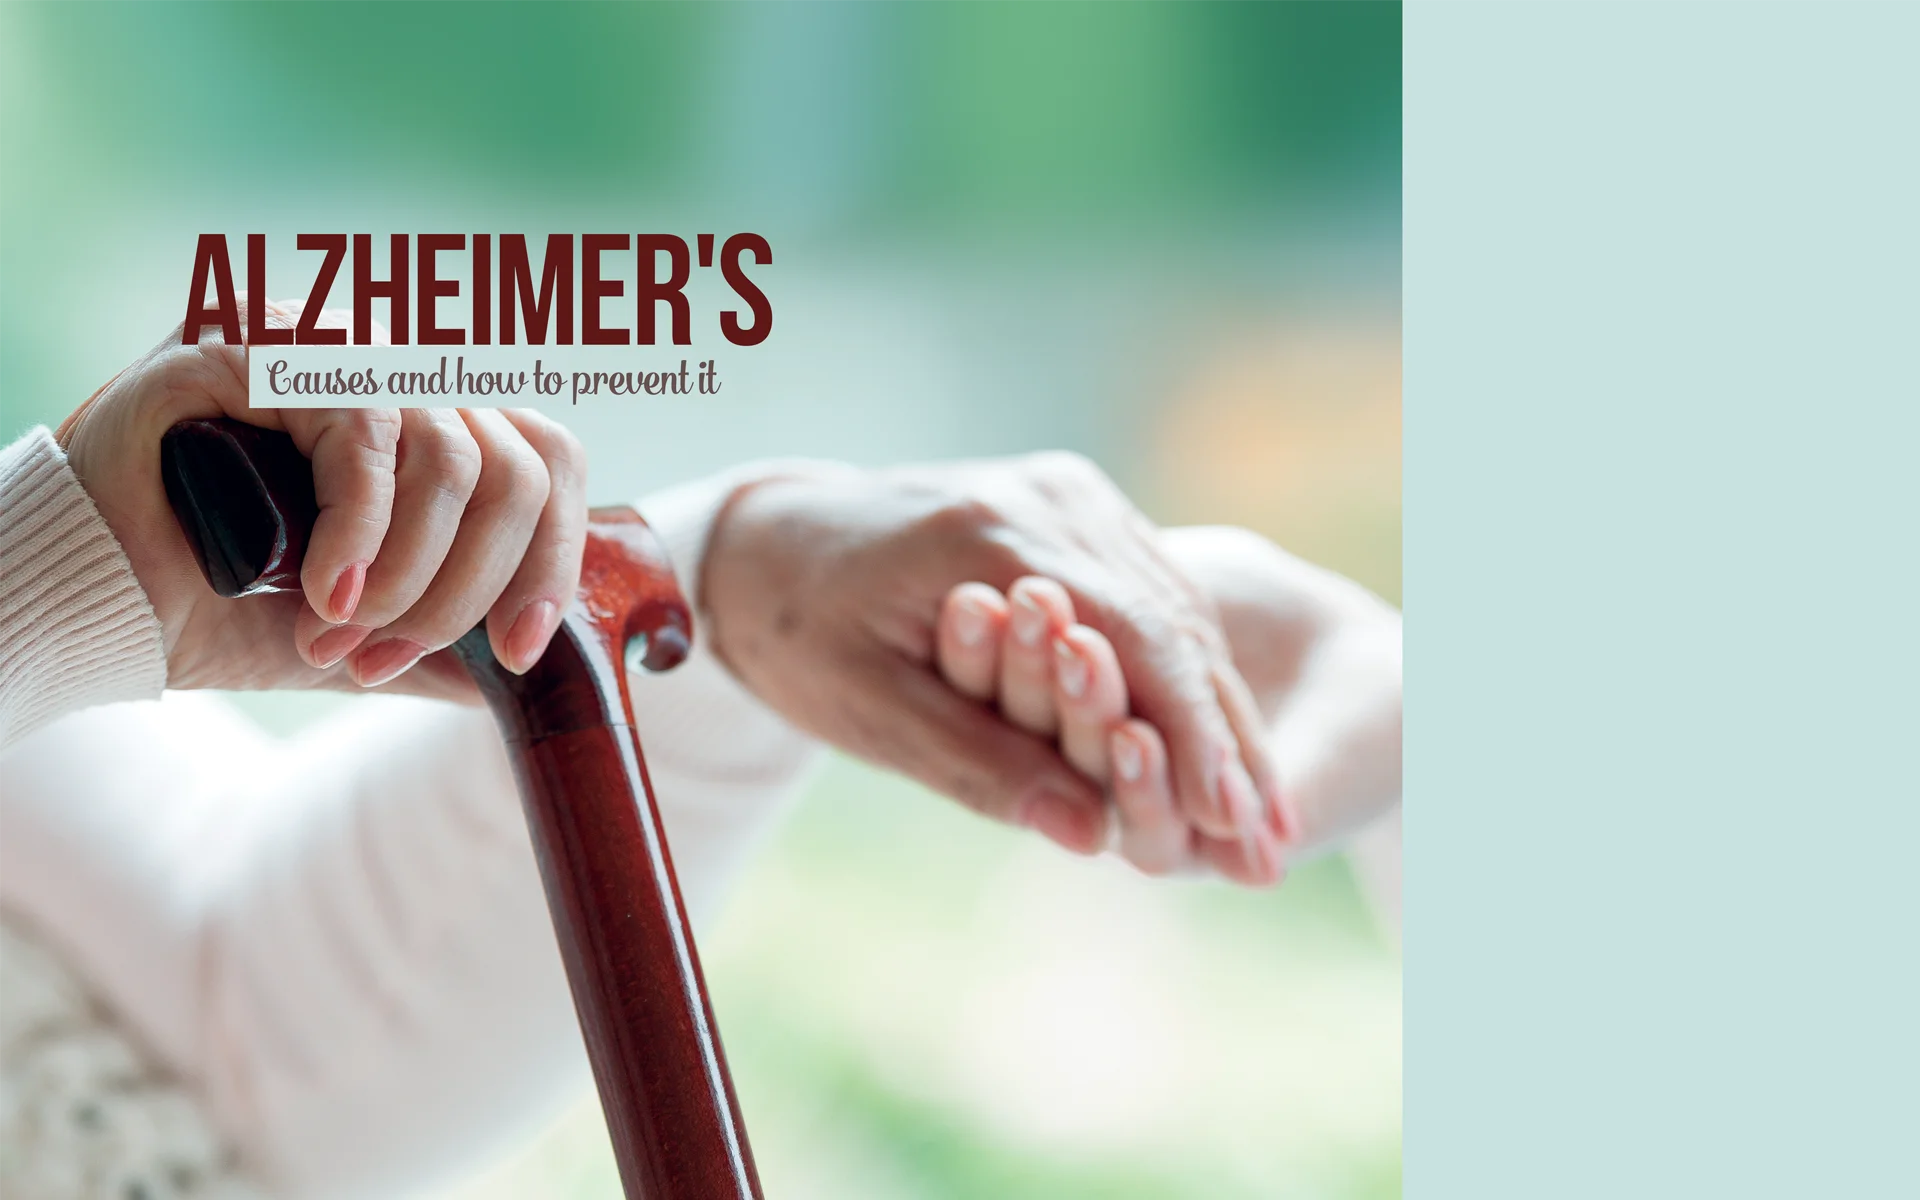 Alzheimer's: Causes and How to Prevent It